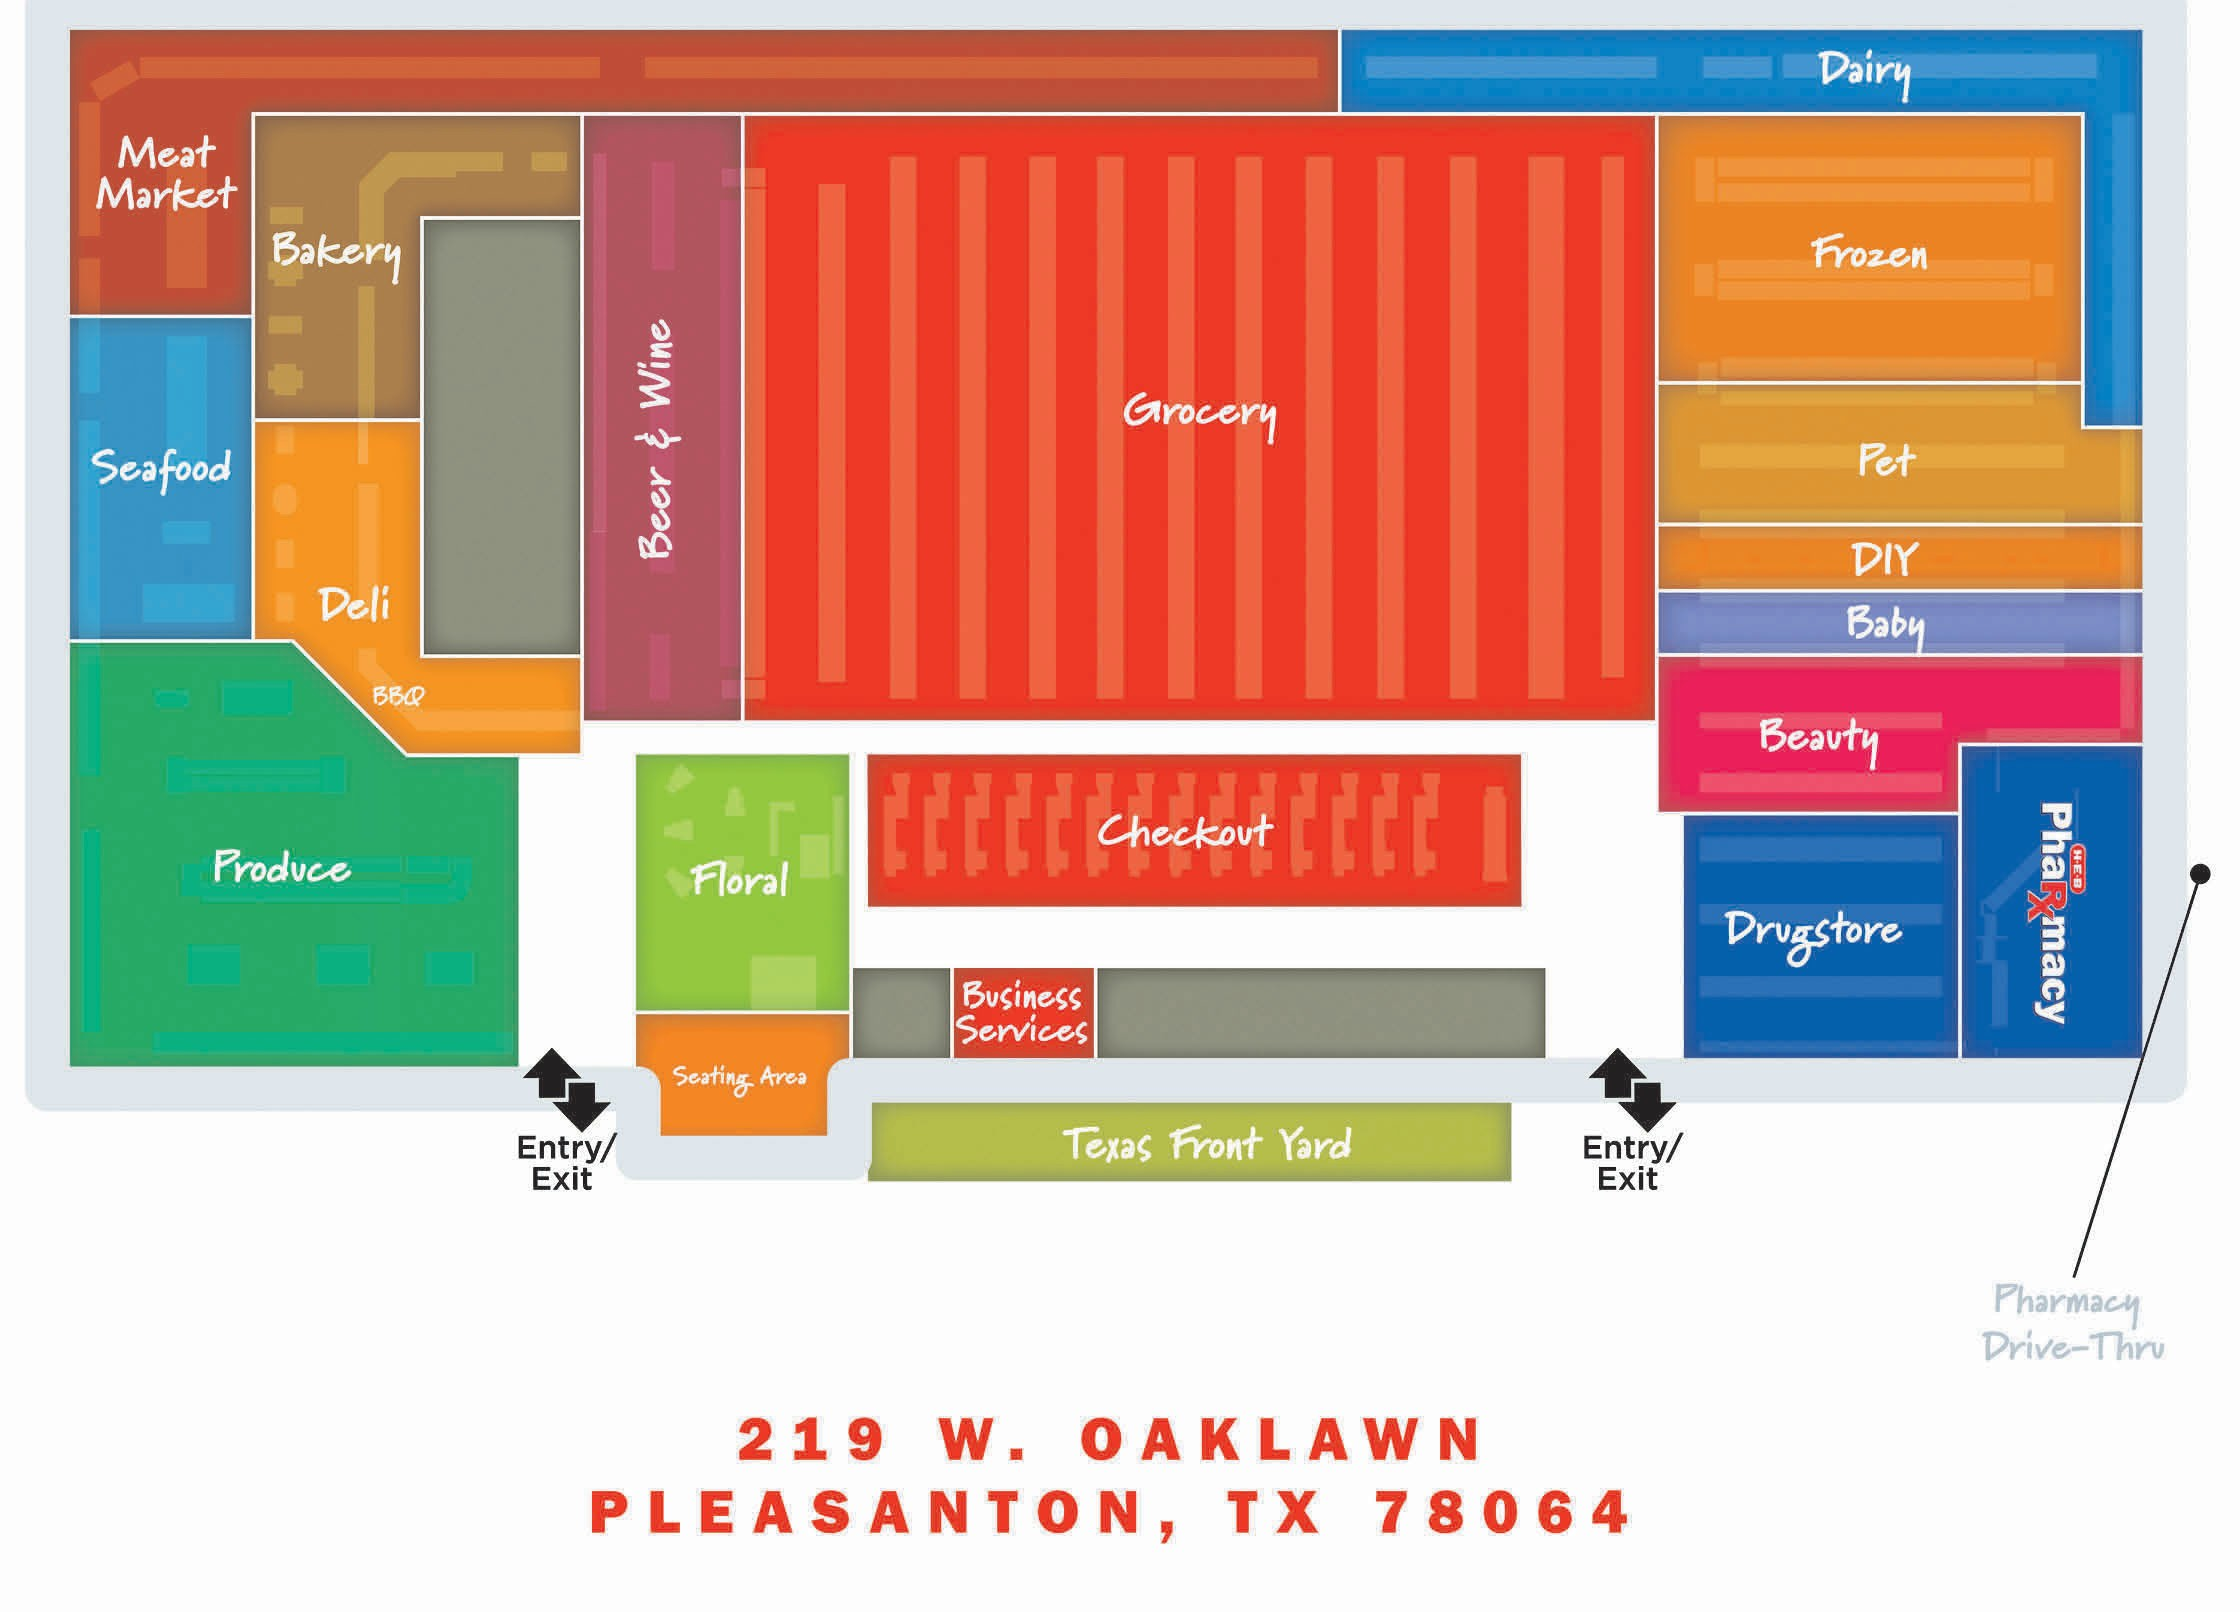 Floor plan for the enlarged H-E-B in Pleasanton.